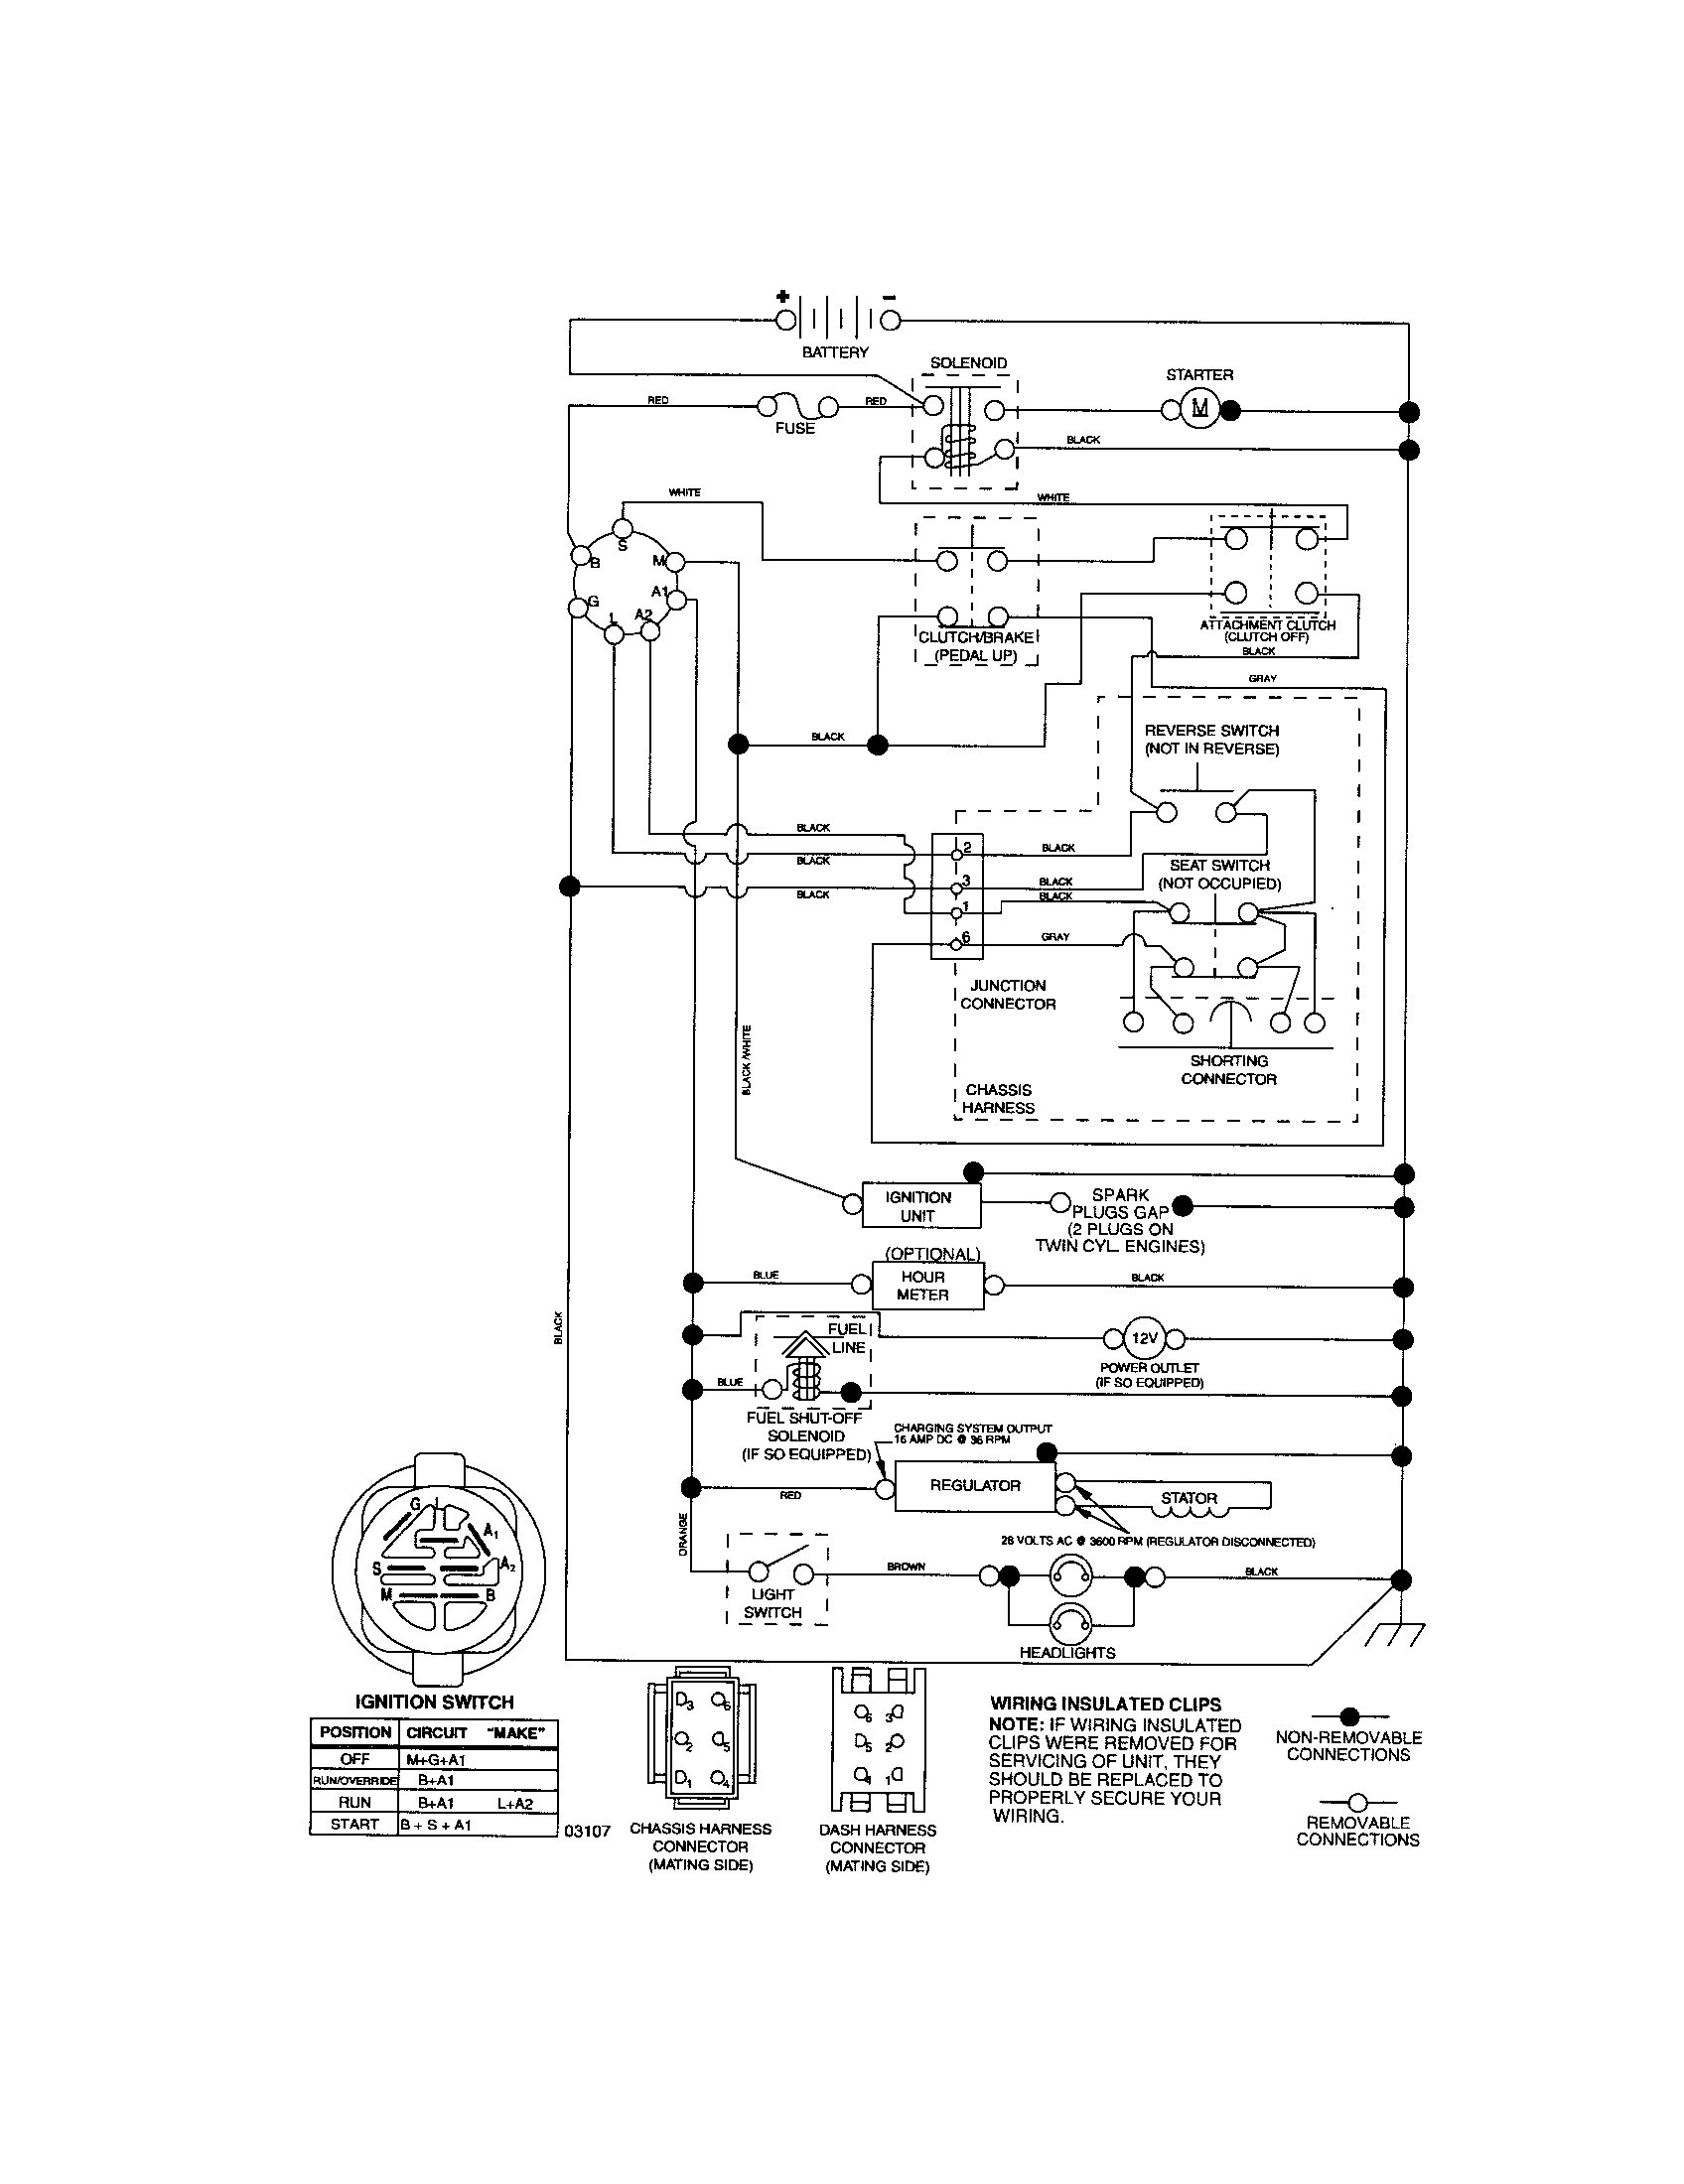 Lesco Mower Wiring Diagram Coils Diy Enthusiasts Wiring Diagrams \u2022  Chinese 110 ATV Wiring Diagram Lesco Wiring Diagram